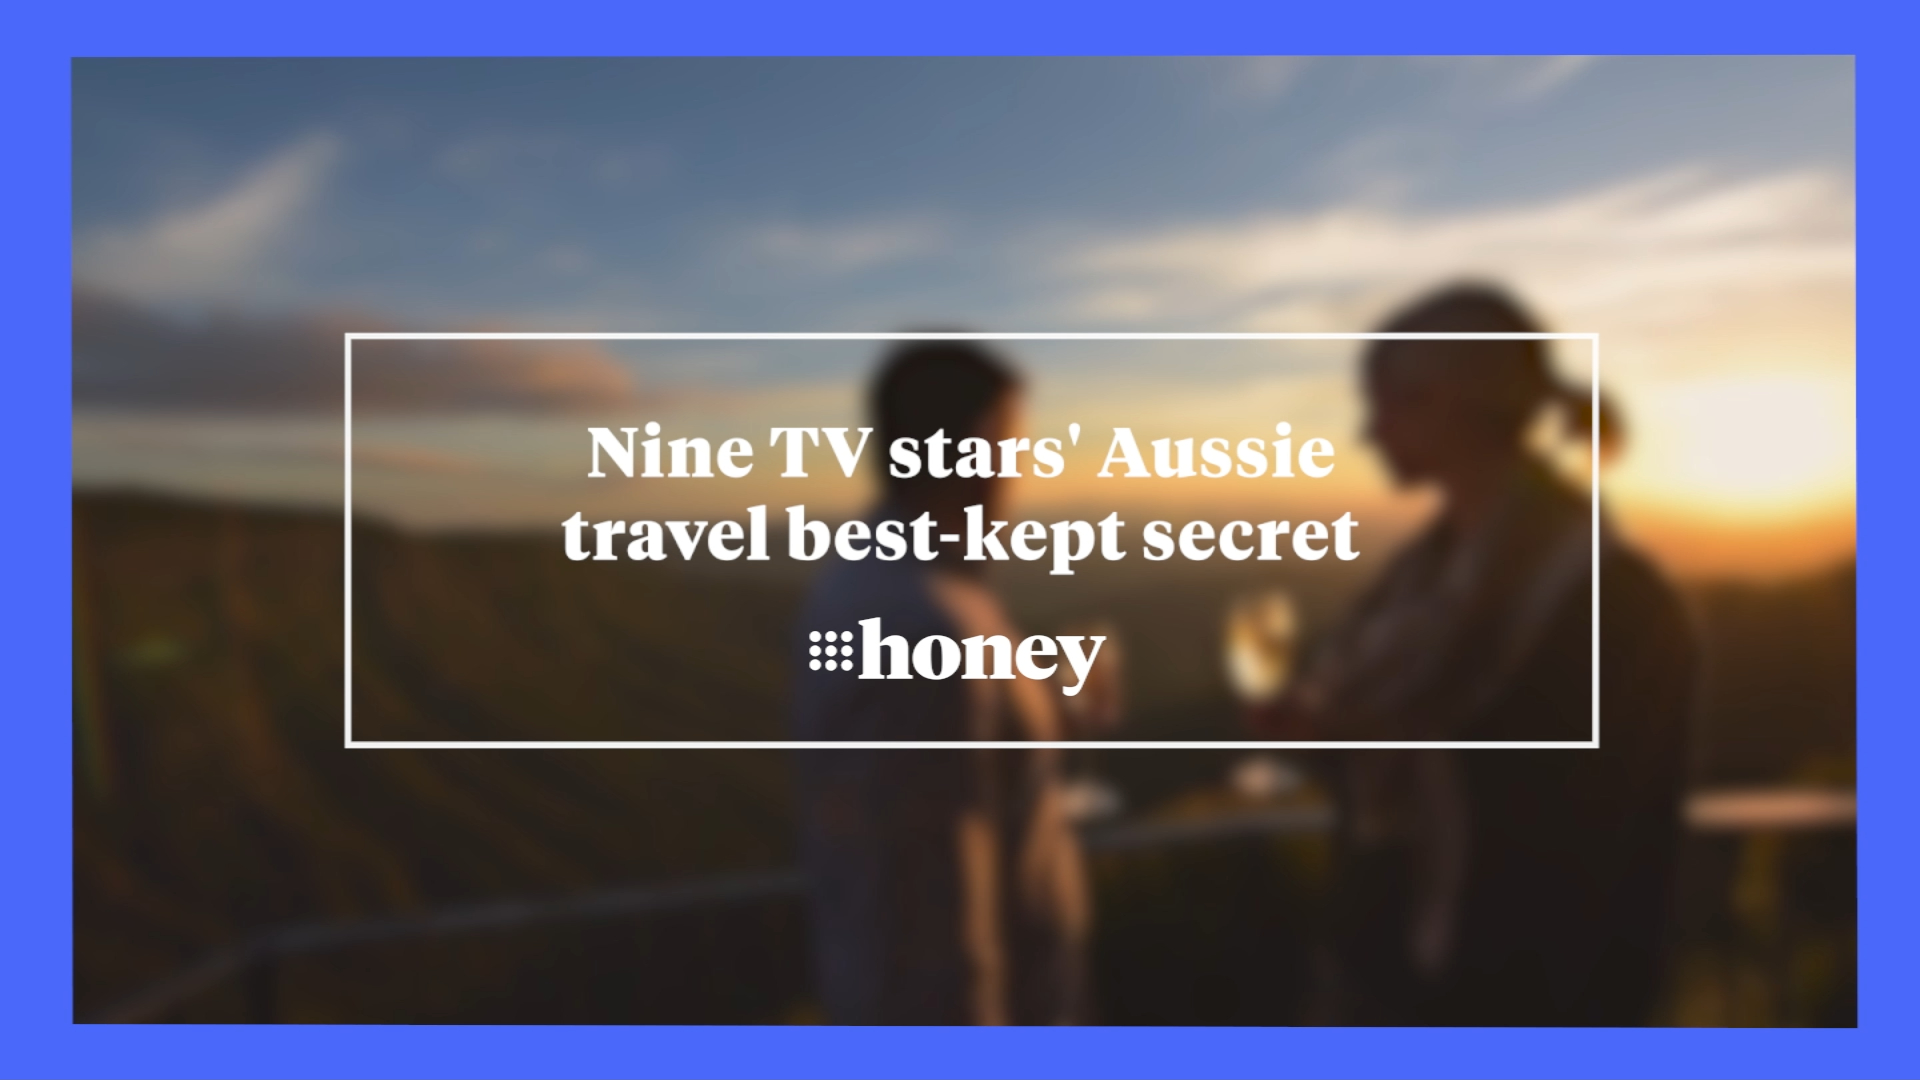 Nine TV stars' Aussie travel best-kept secret